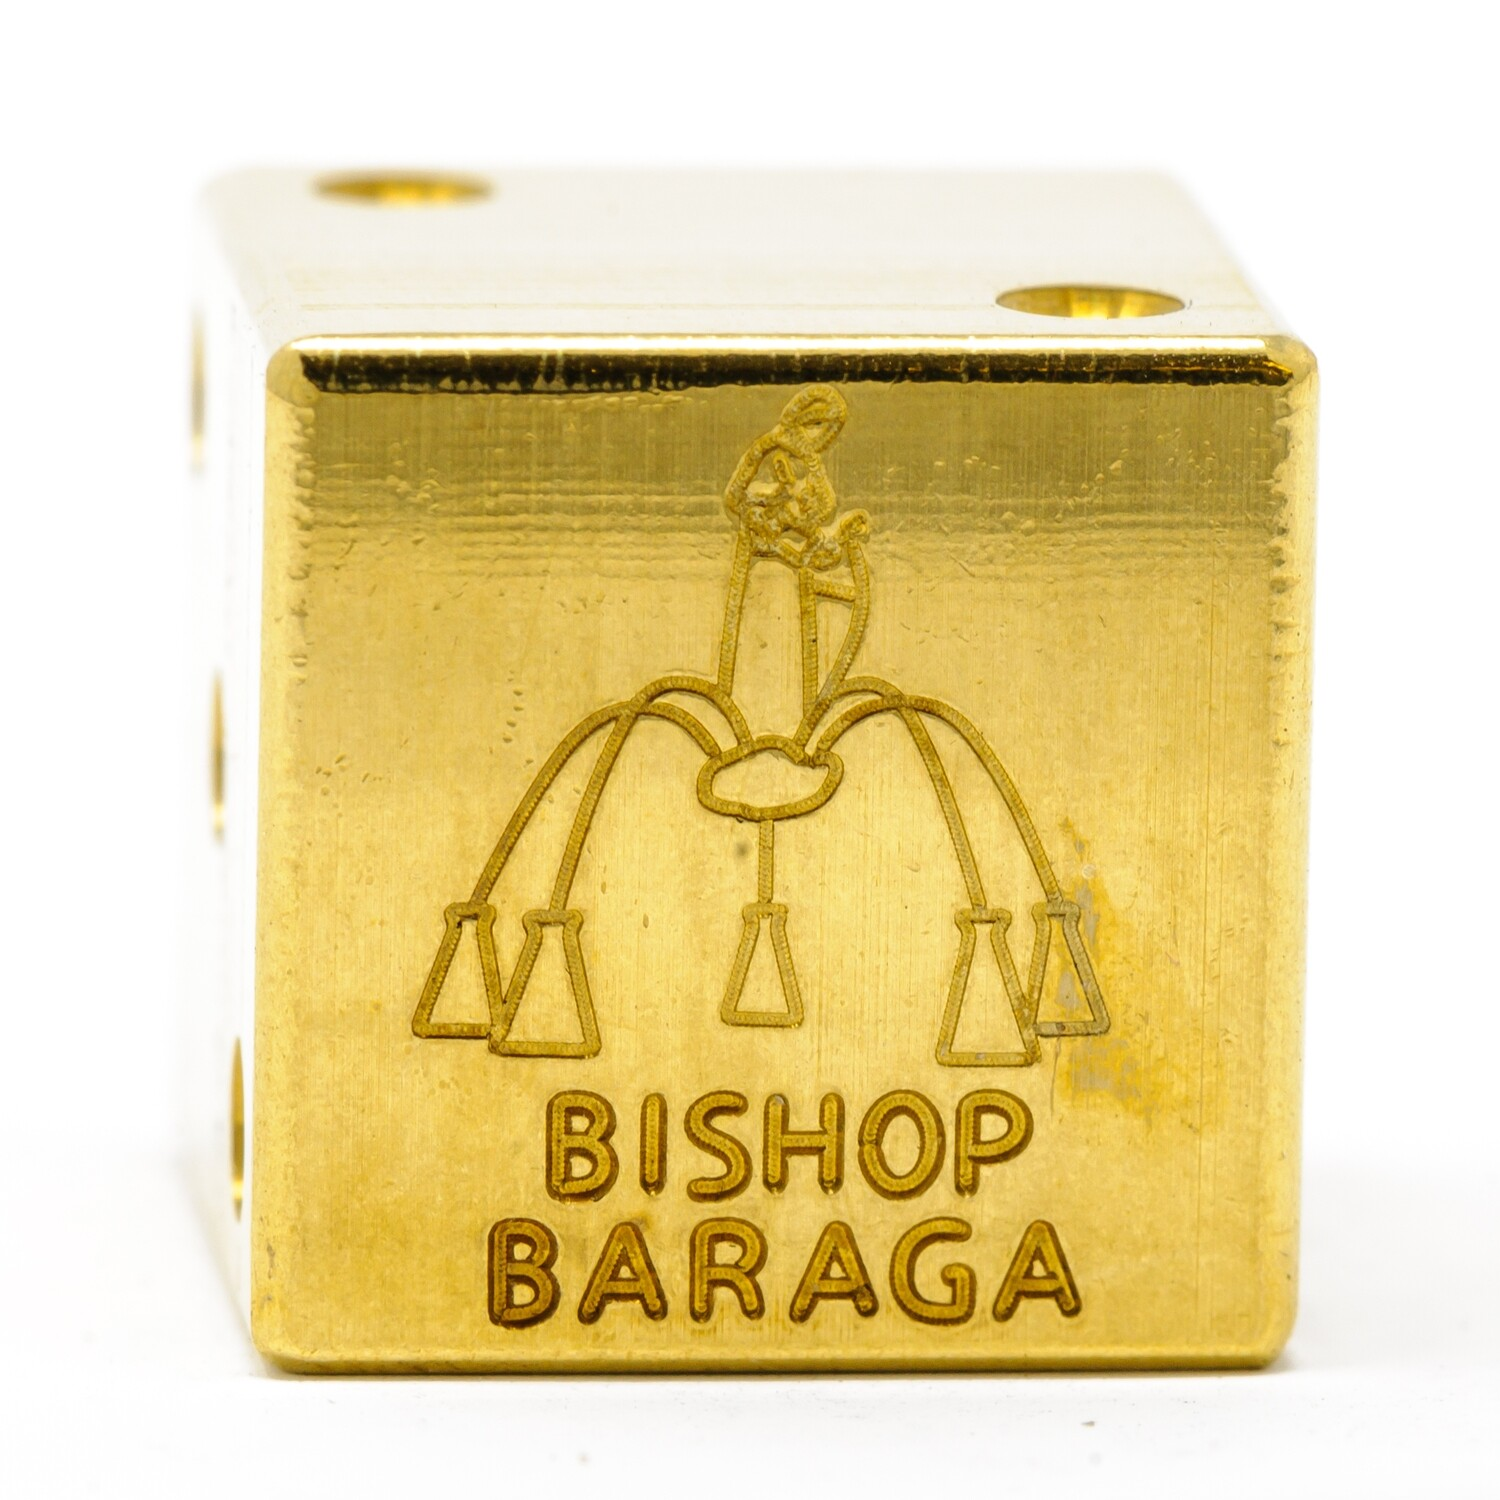 Bishop Baraga Shrine